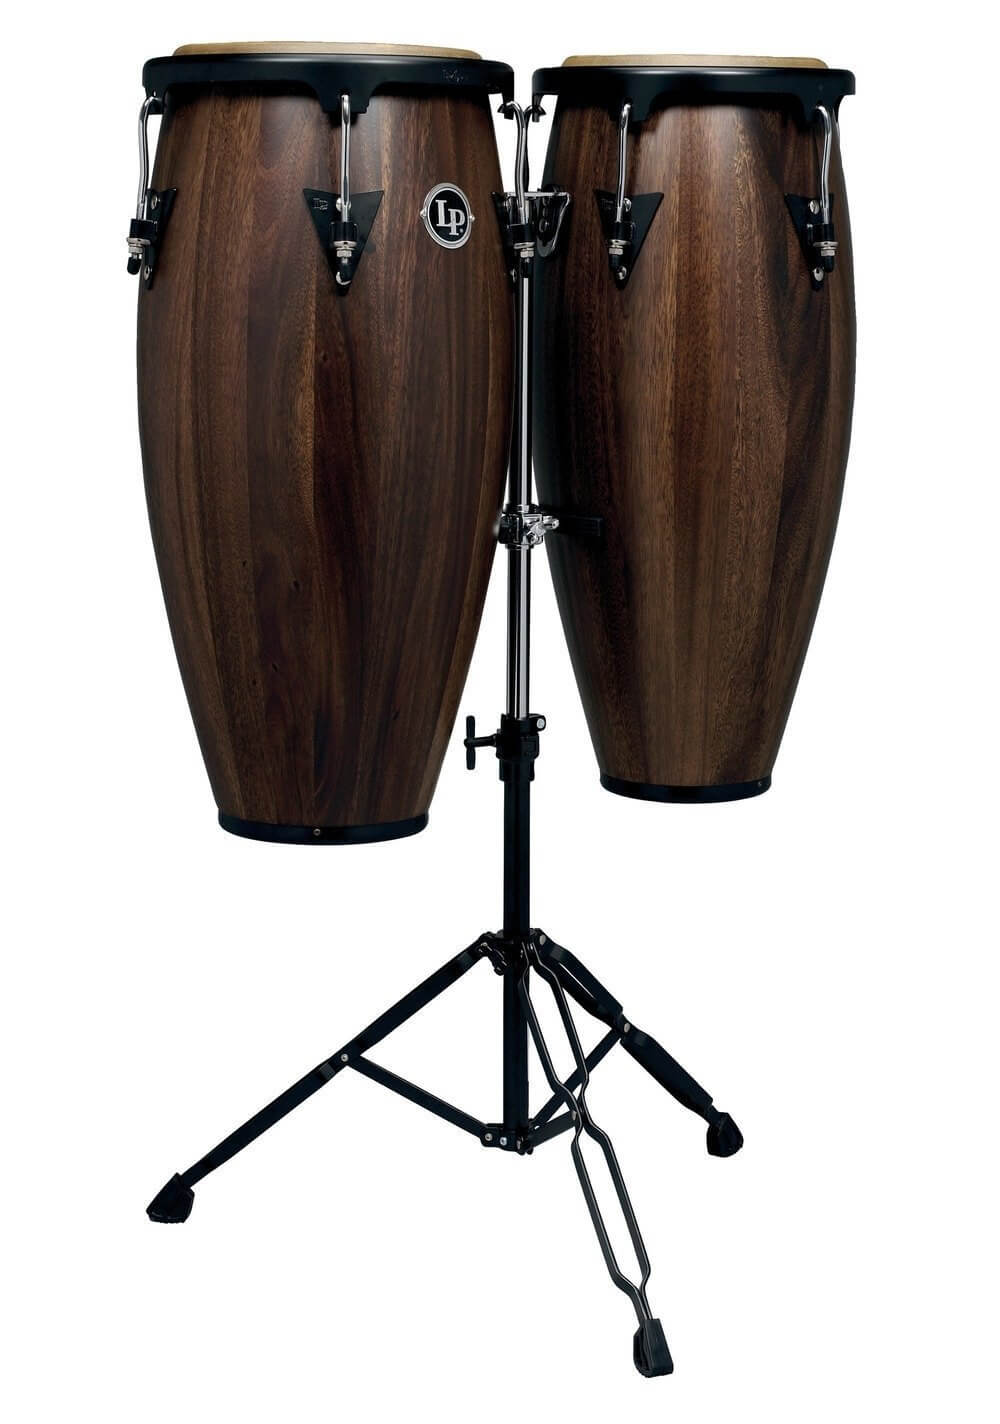 Set Congas Latin Percussion Lpa647 10